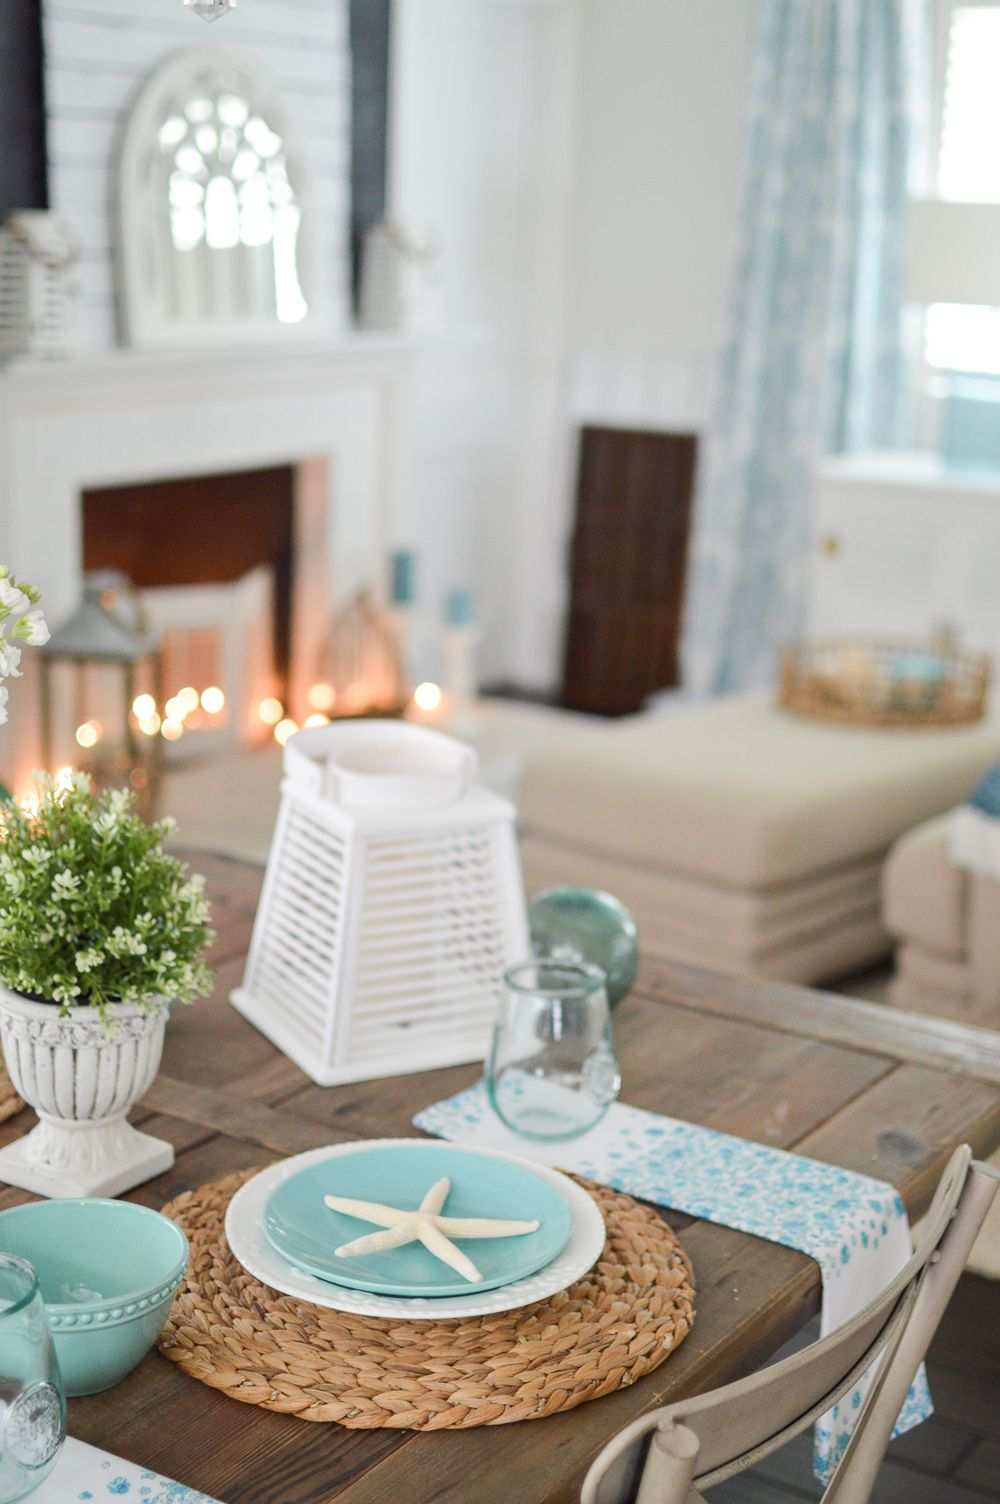 Simple Summer Decorating Ideas Farmhouse Table Centerpieces Table Decorations Coastal Cottage Bathroom